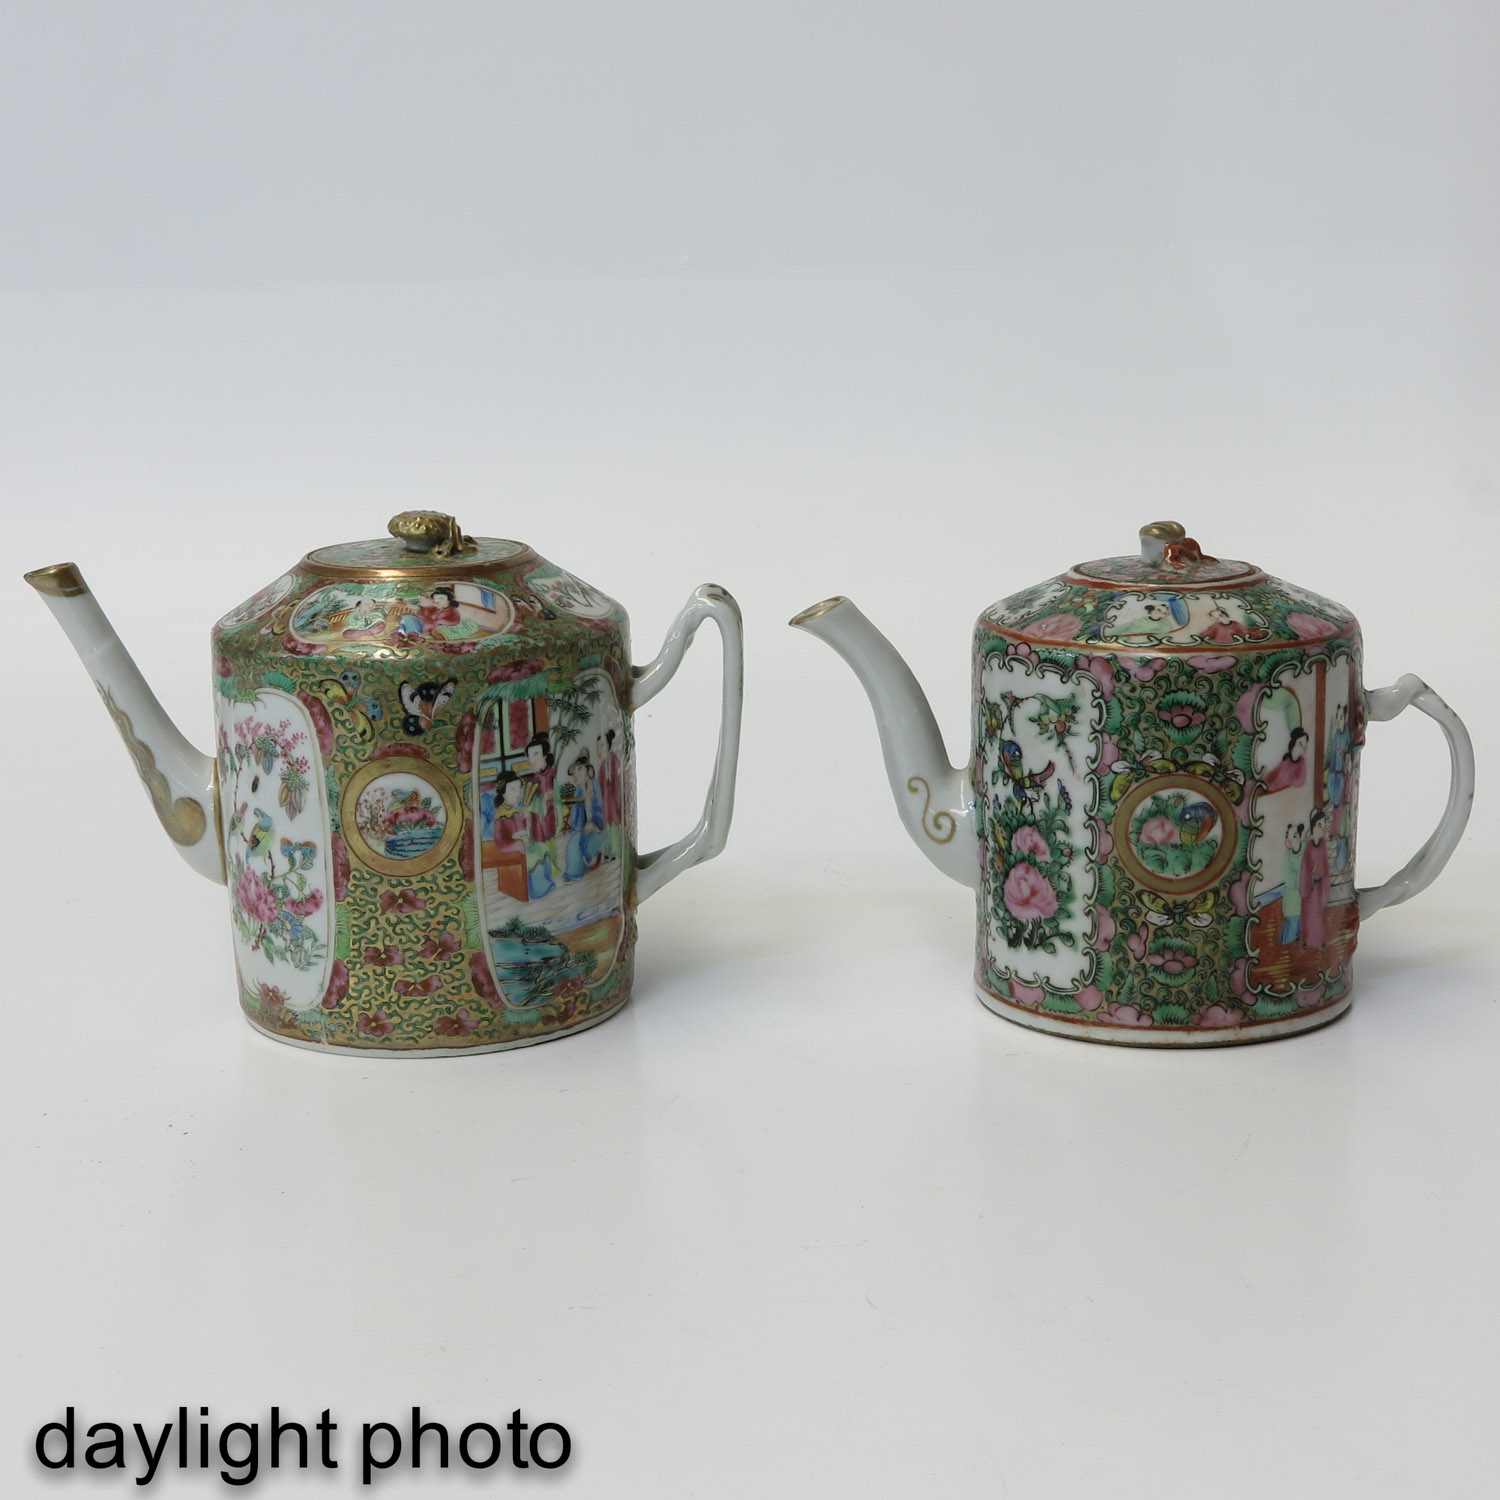 A Lot of 2 Cantonese Teapots - Image 7 of 9